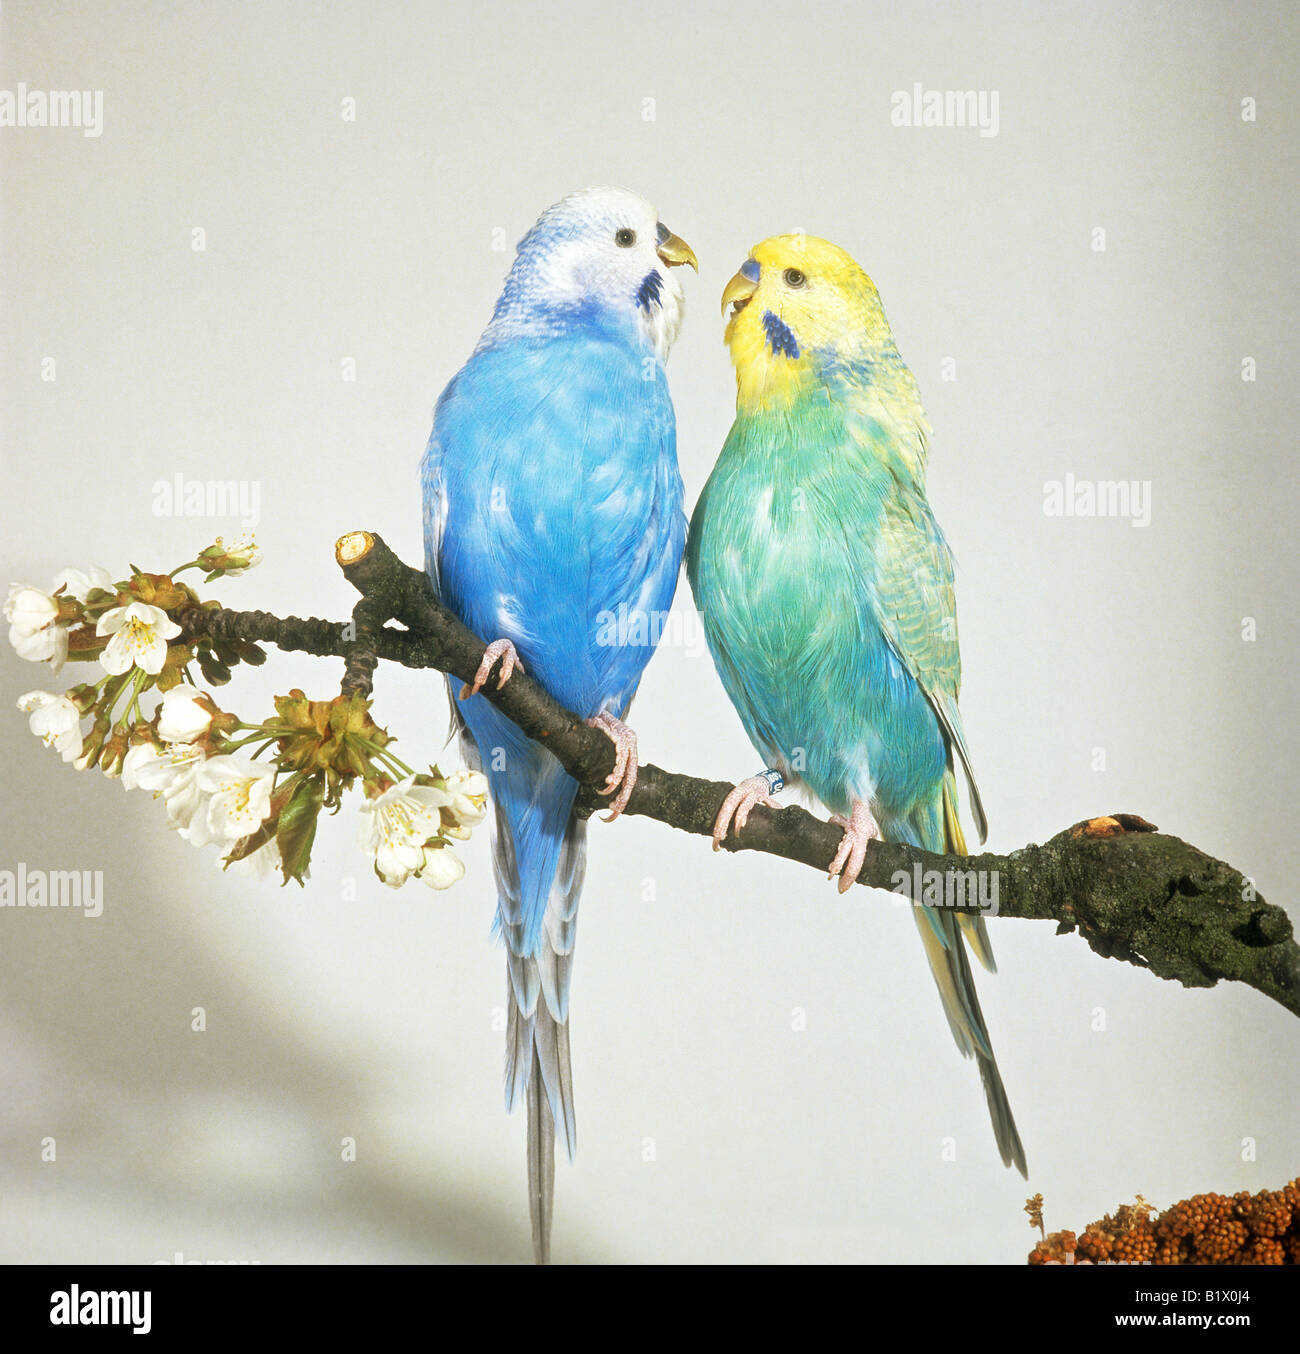 two budgerigars - sitting on branch - Stock Image